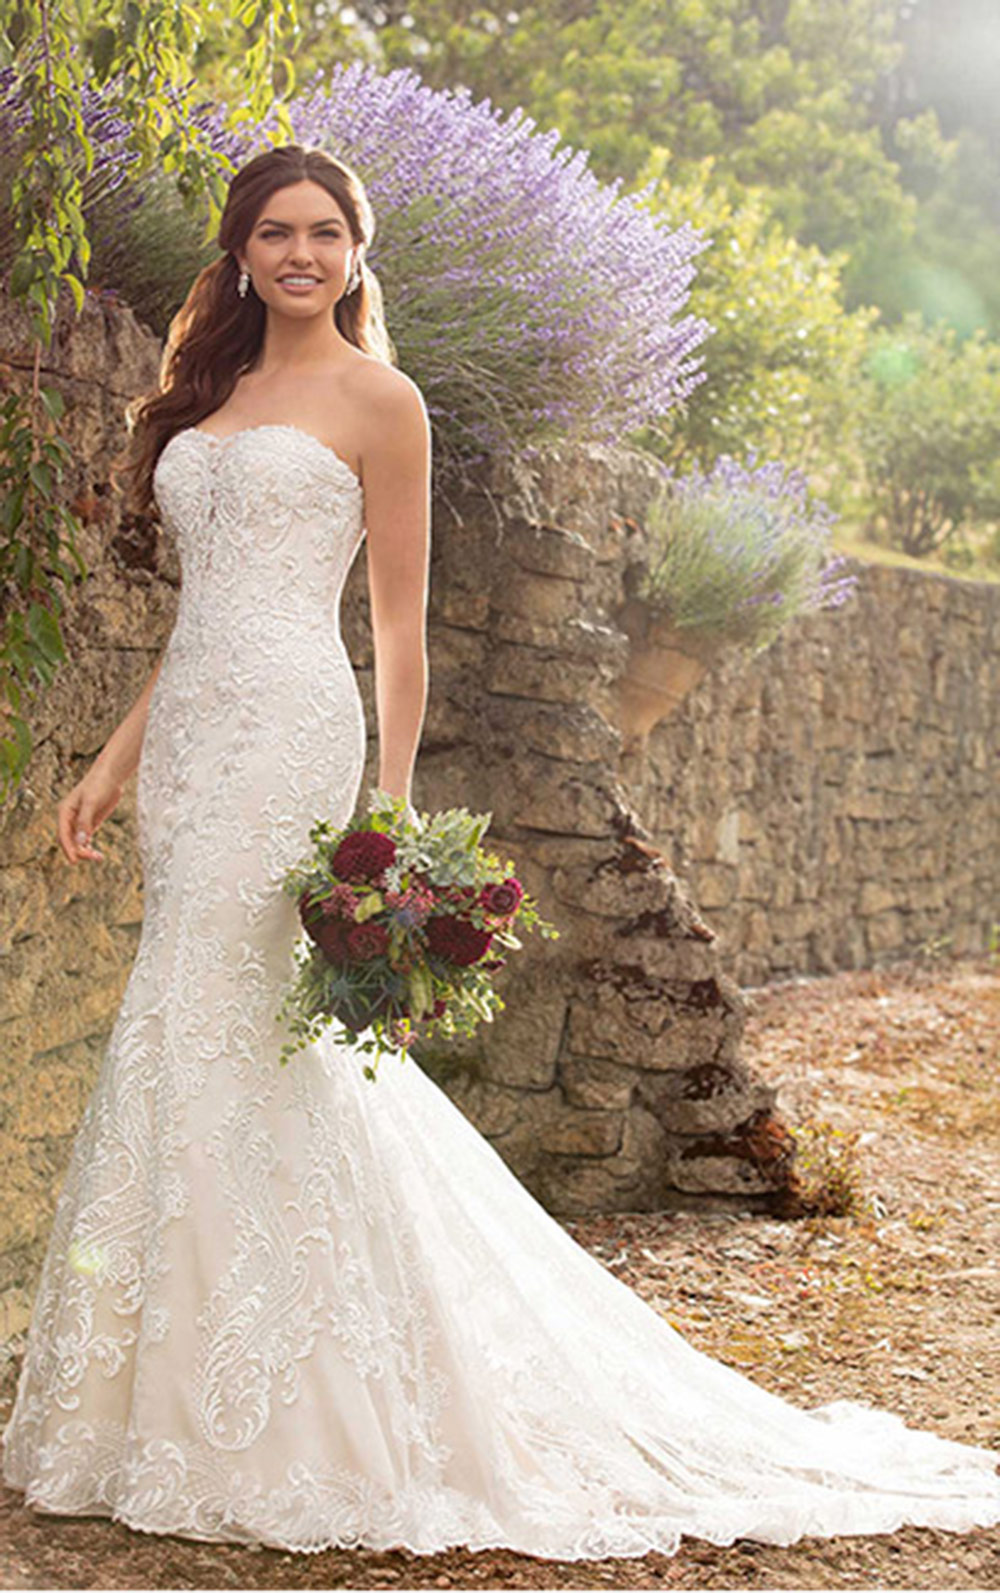 Bride To Be - Bridal Boutique in Reading